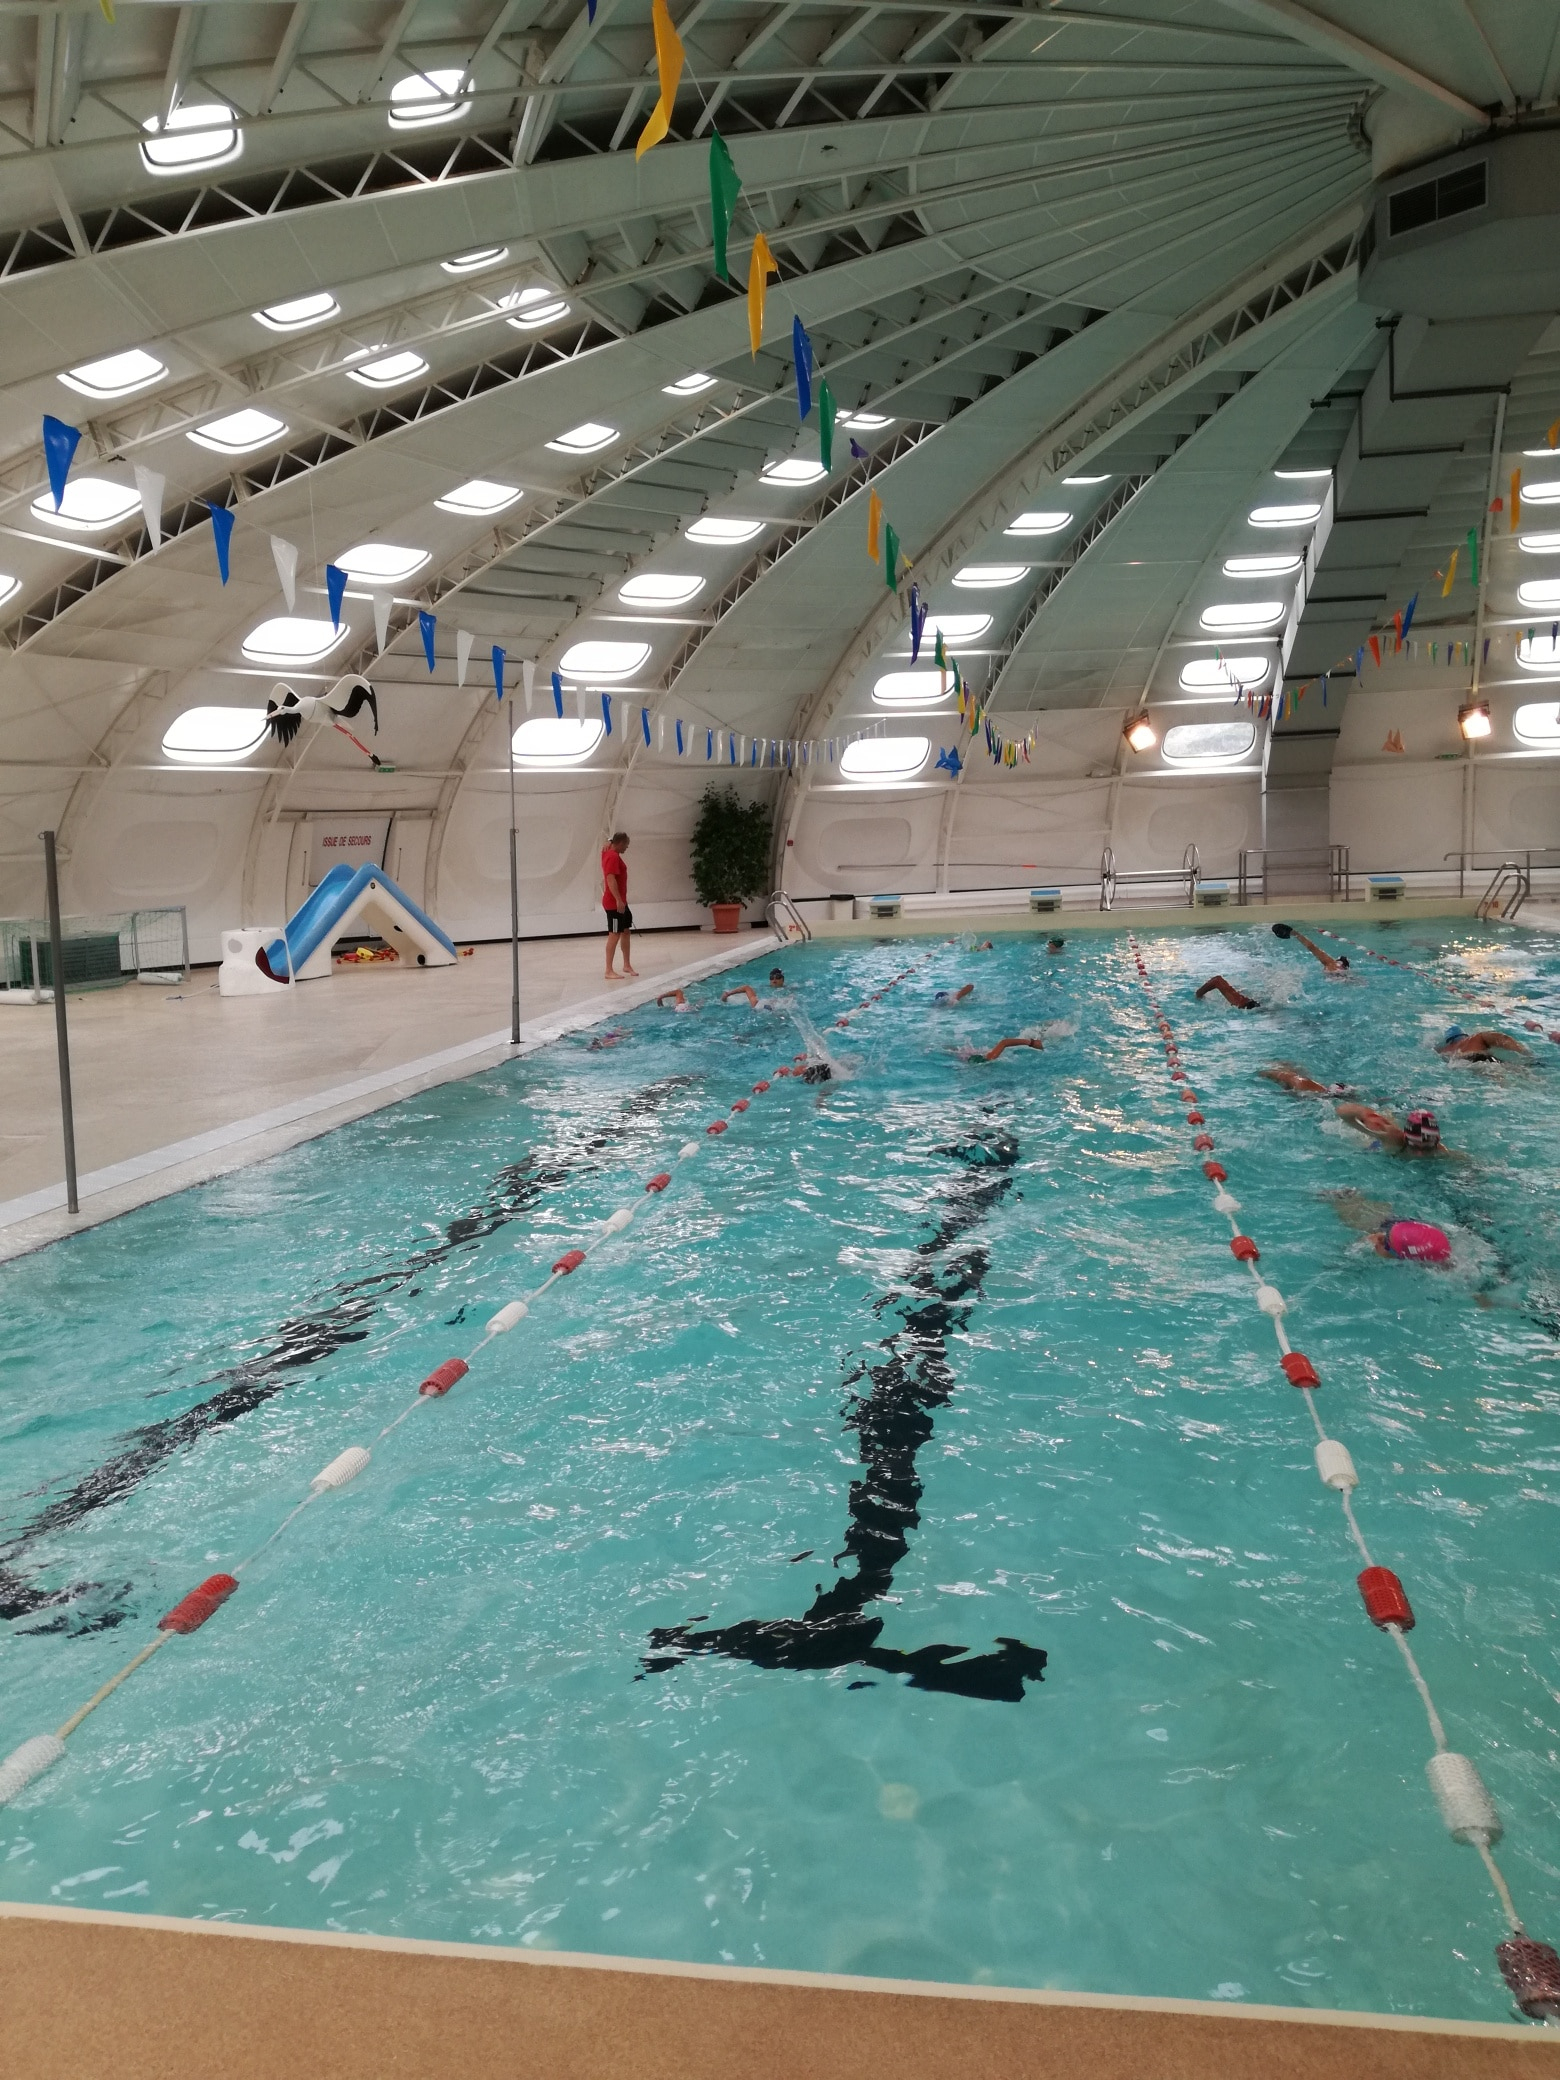 Une Belle École De Triathlon À Saint-Paul-Lès-Dax - Ligue ... encequiconcerne Piscine Saint Paul Les Dax